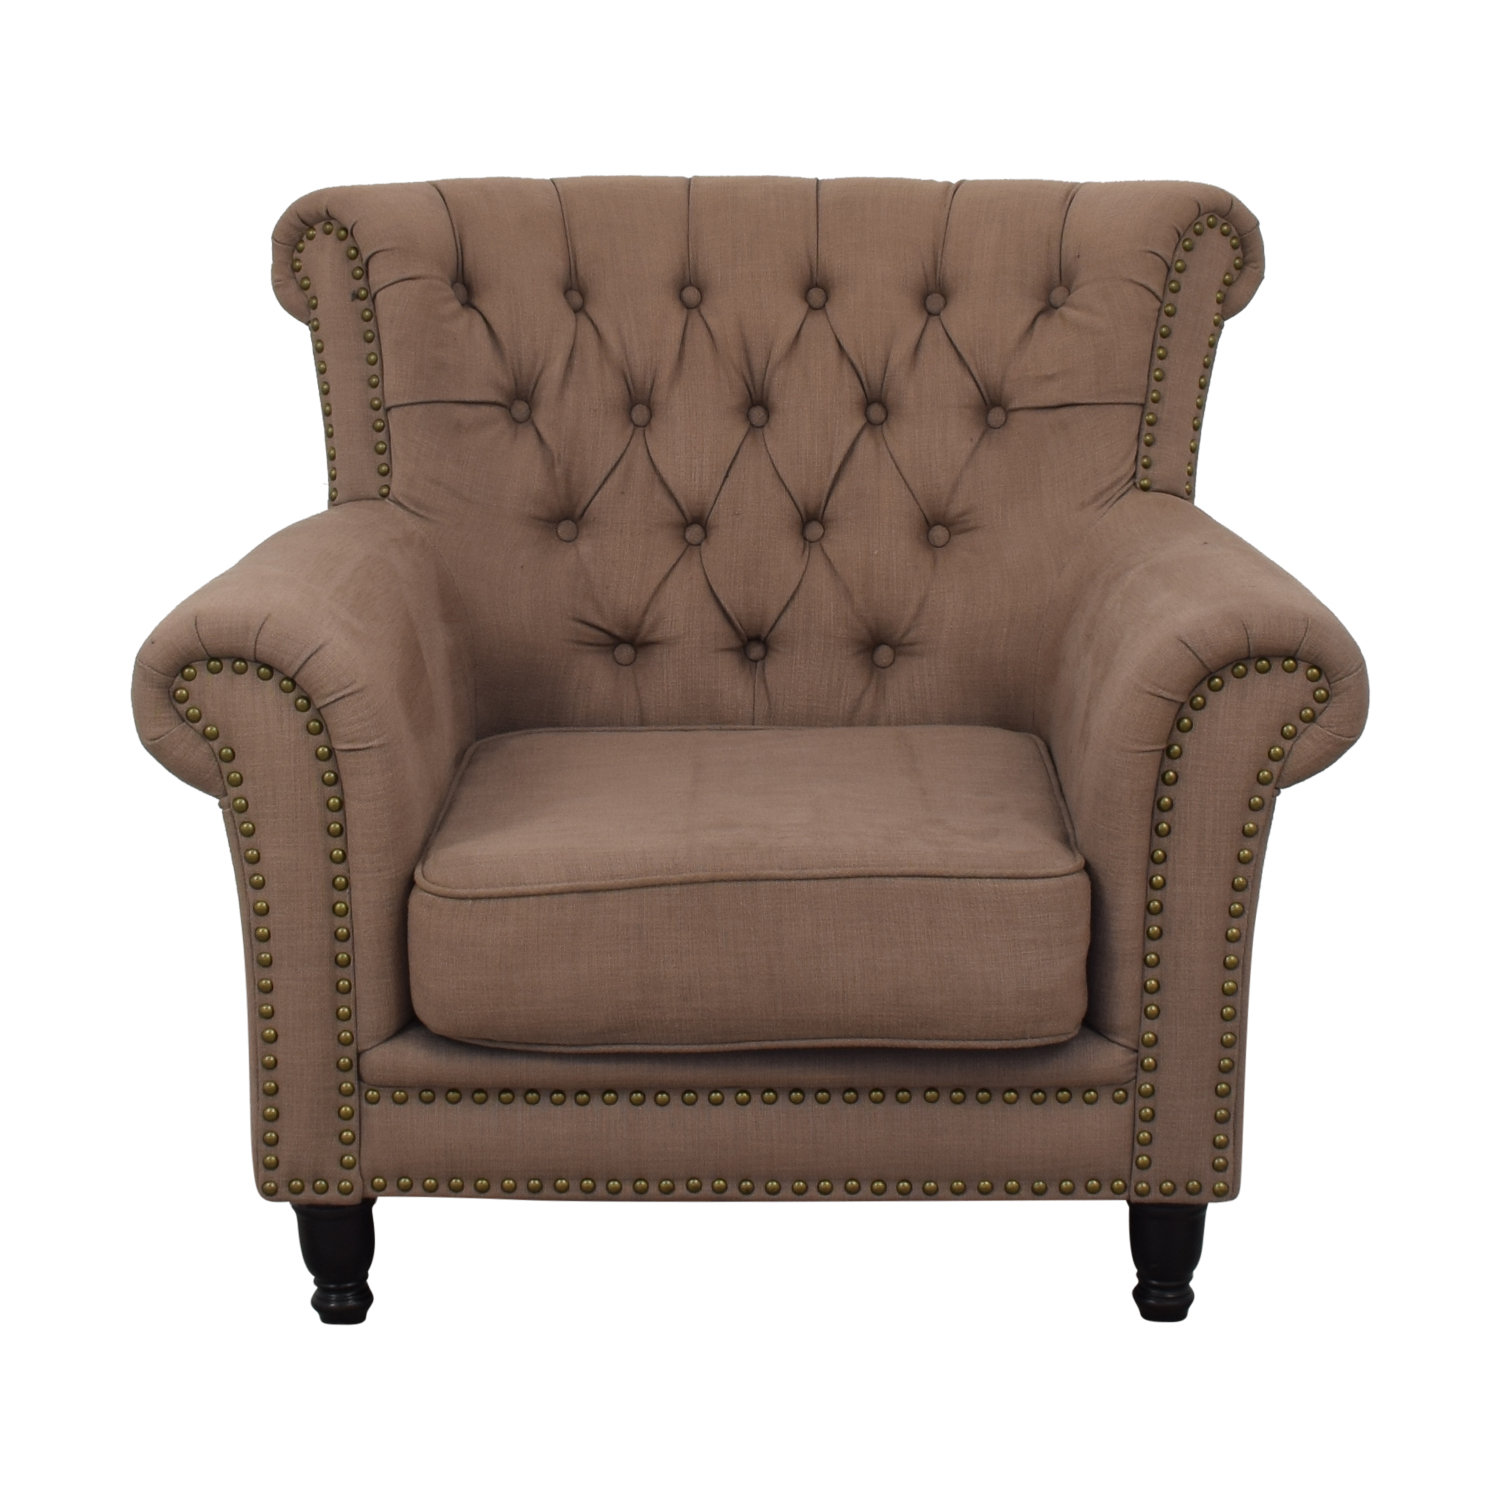 ABC Carpet & Home ABC Carpet & Home Tufted Nailhead Arm Chair discount